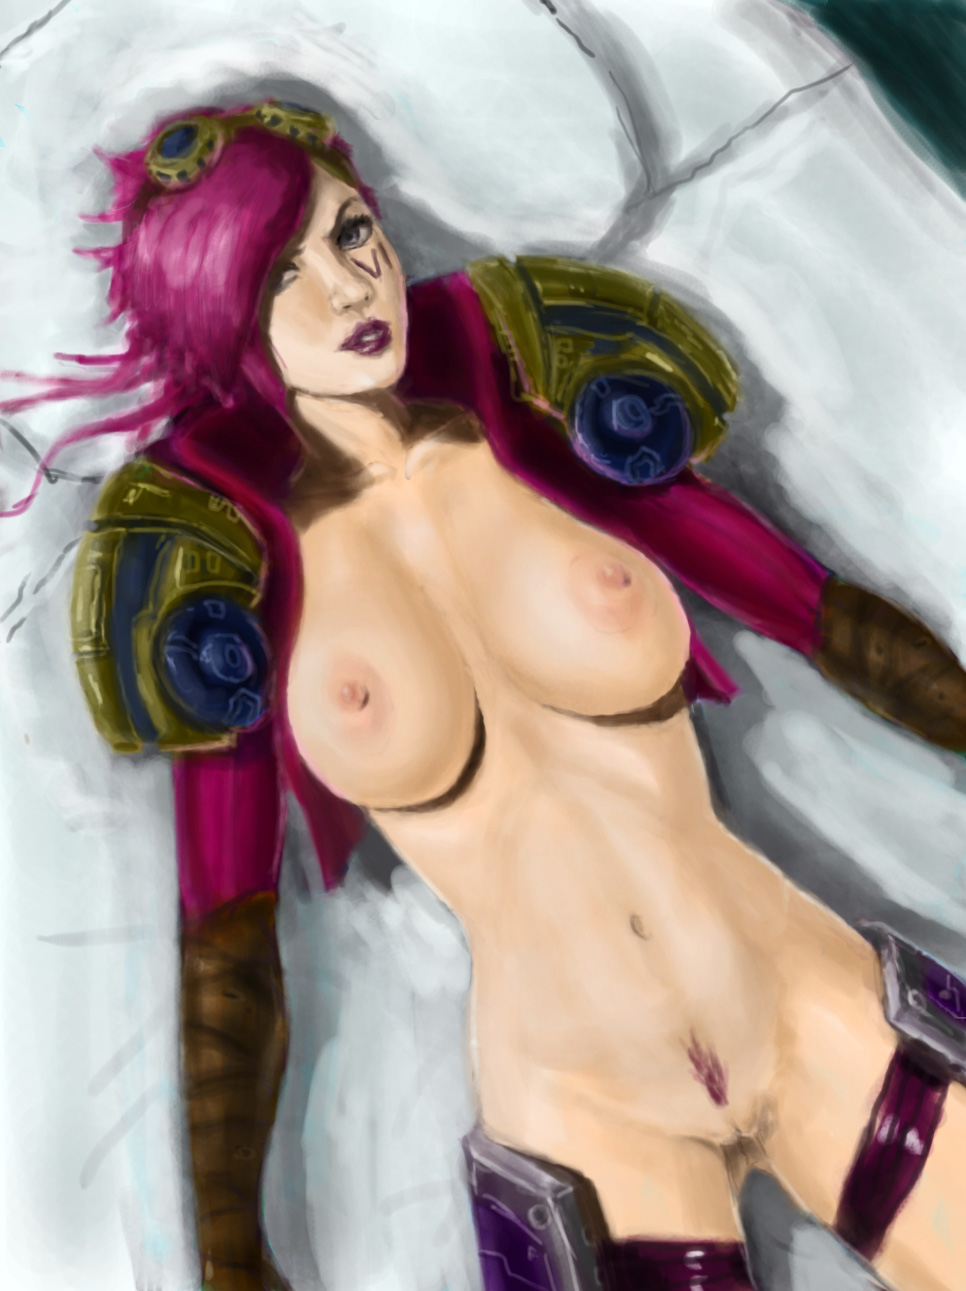 vi league hentai (1)